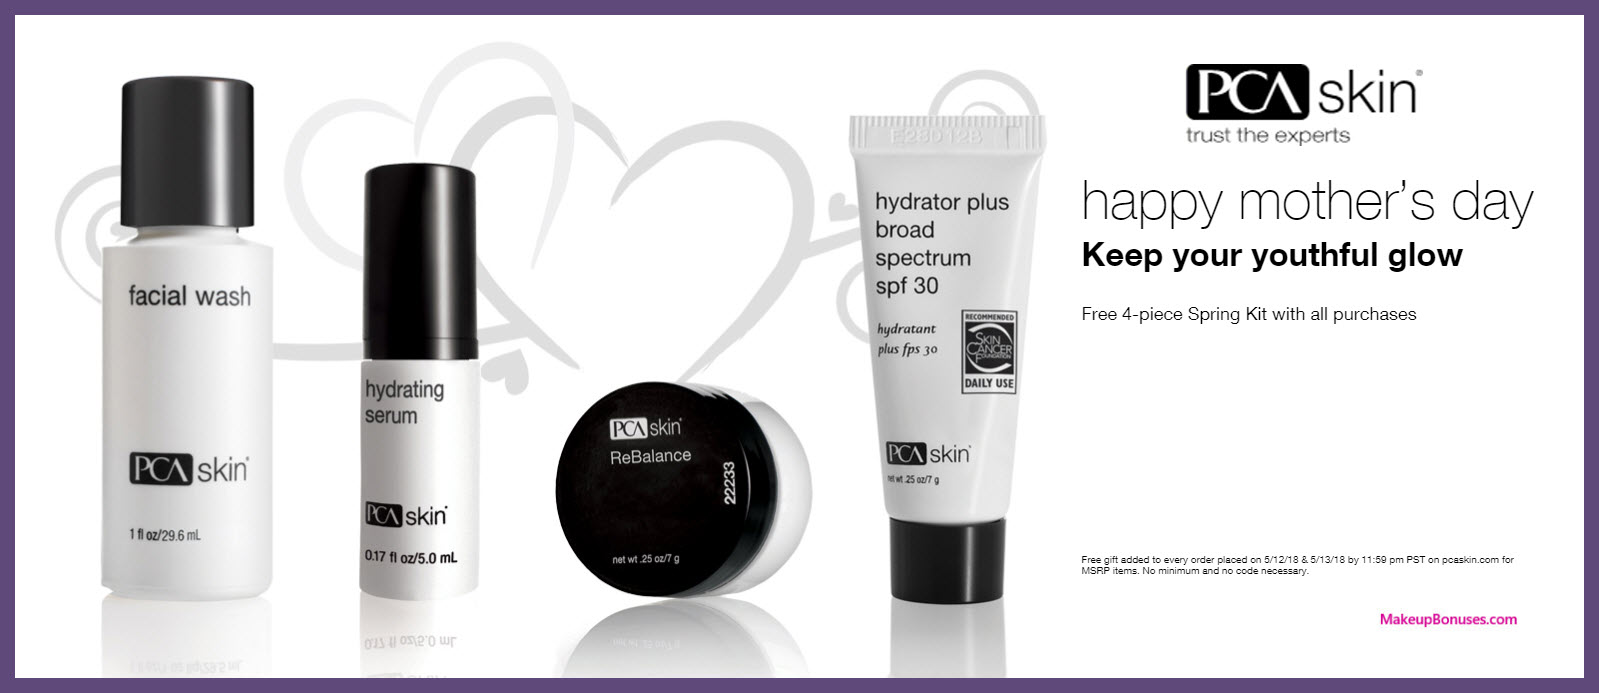 Receive a free 4-pc gift with all purchase